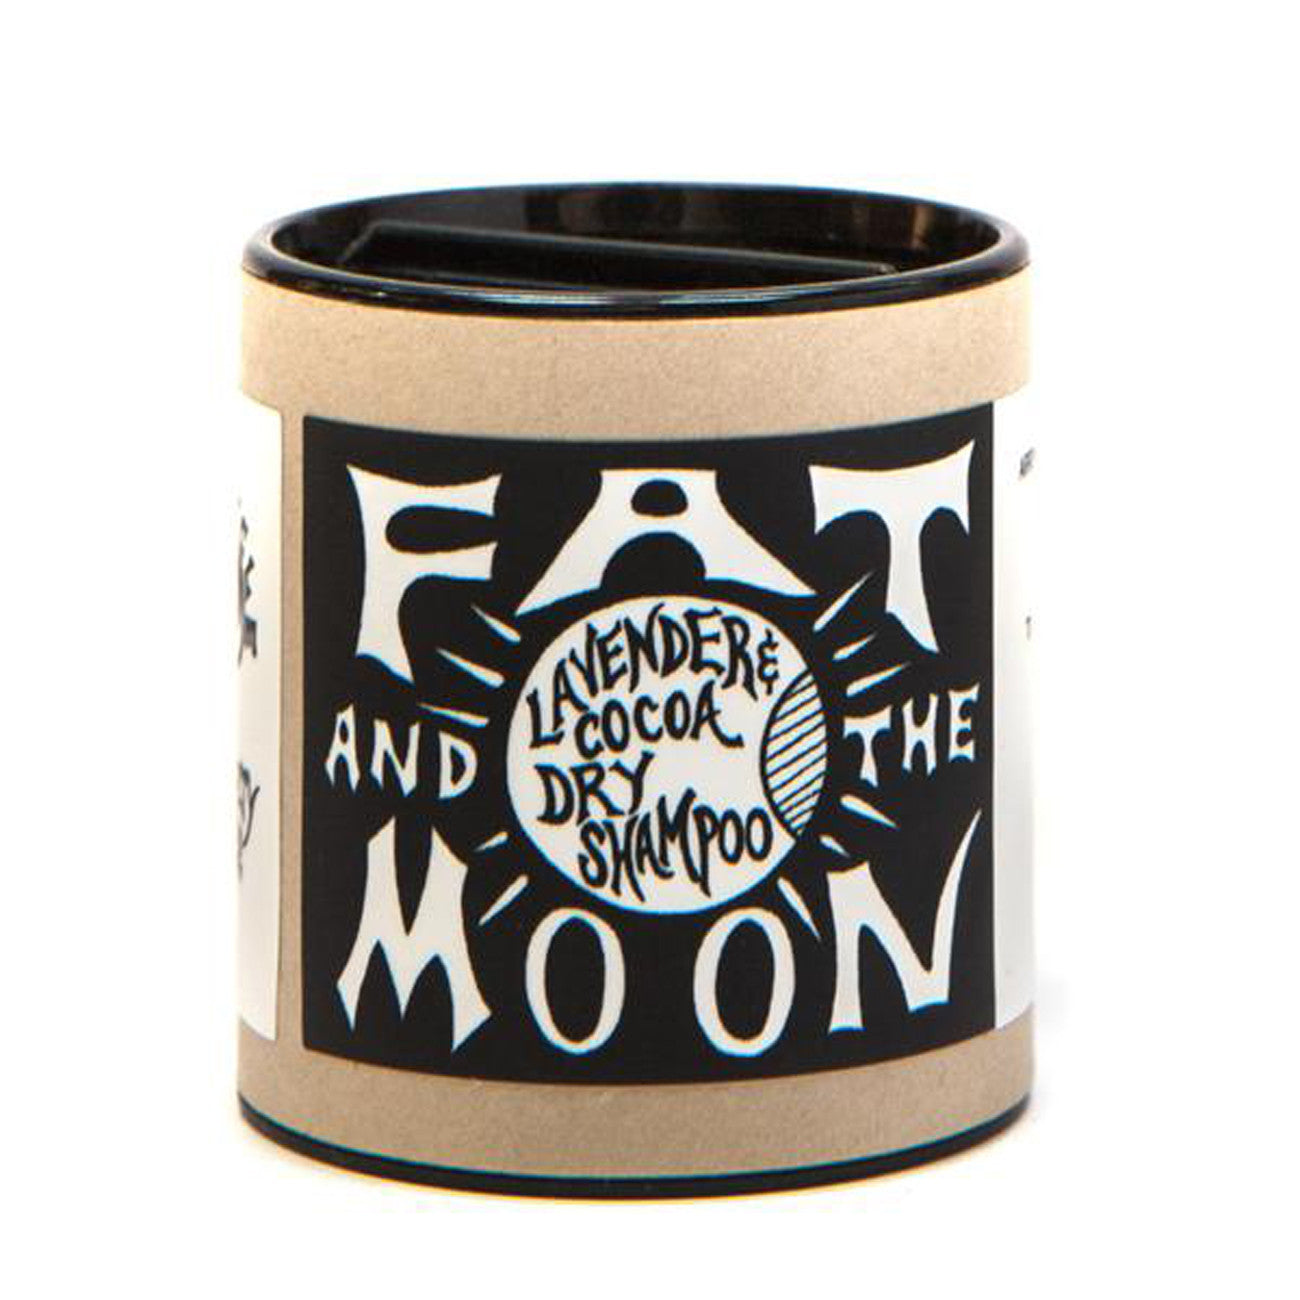 Fat and the Moon Lavender and Cocoa Dry Shampoo